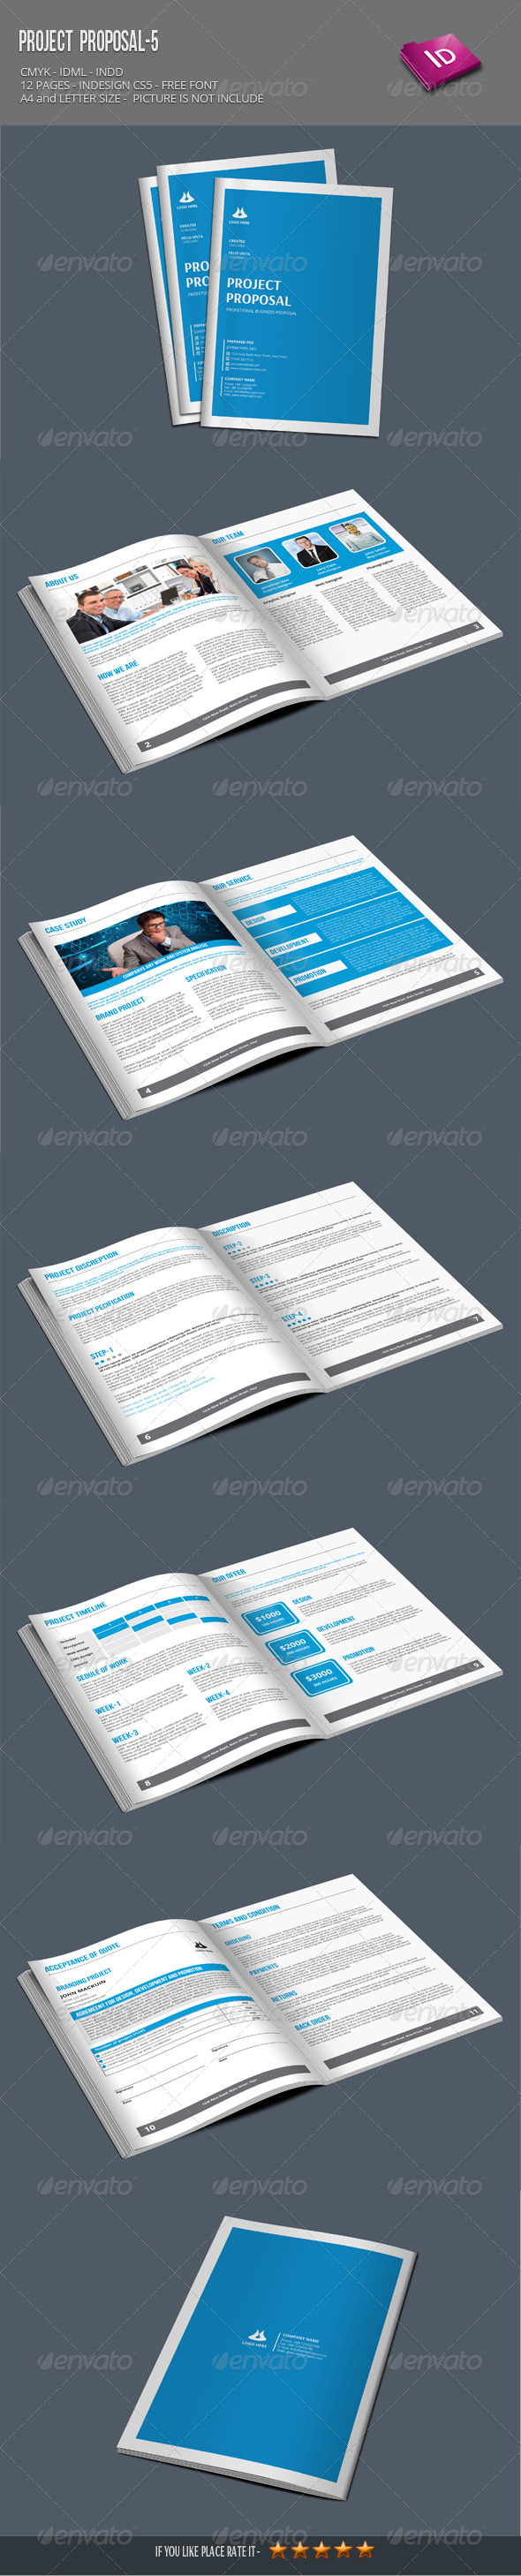 Project Proposal-5 - Proposals & Invoices Stationery